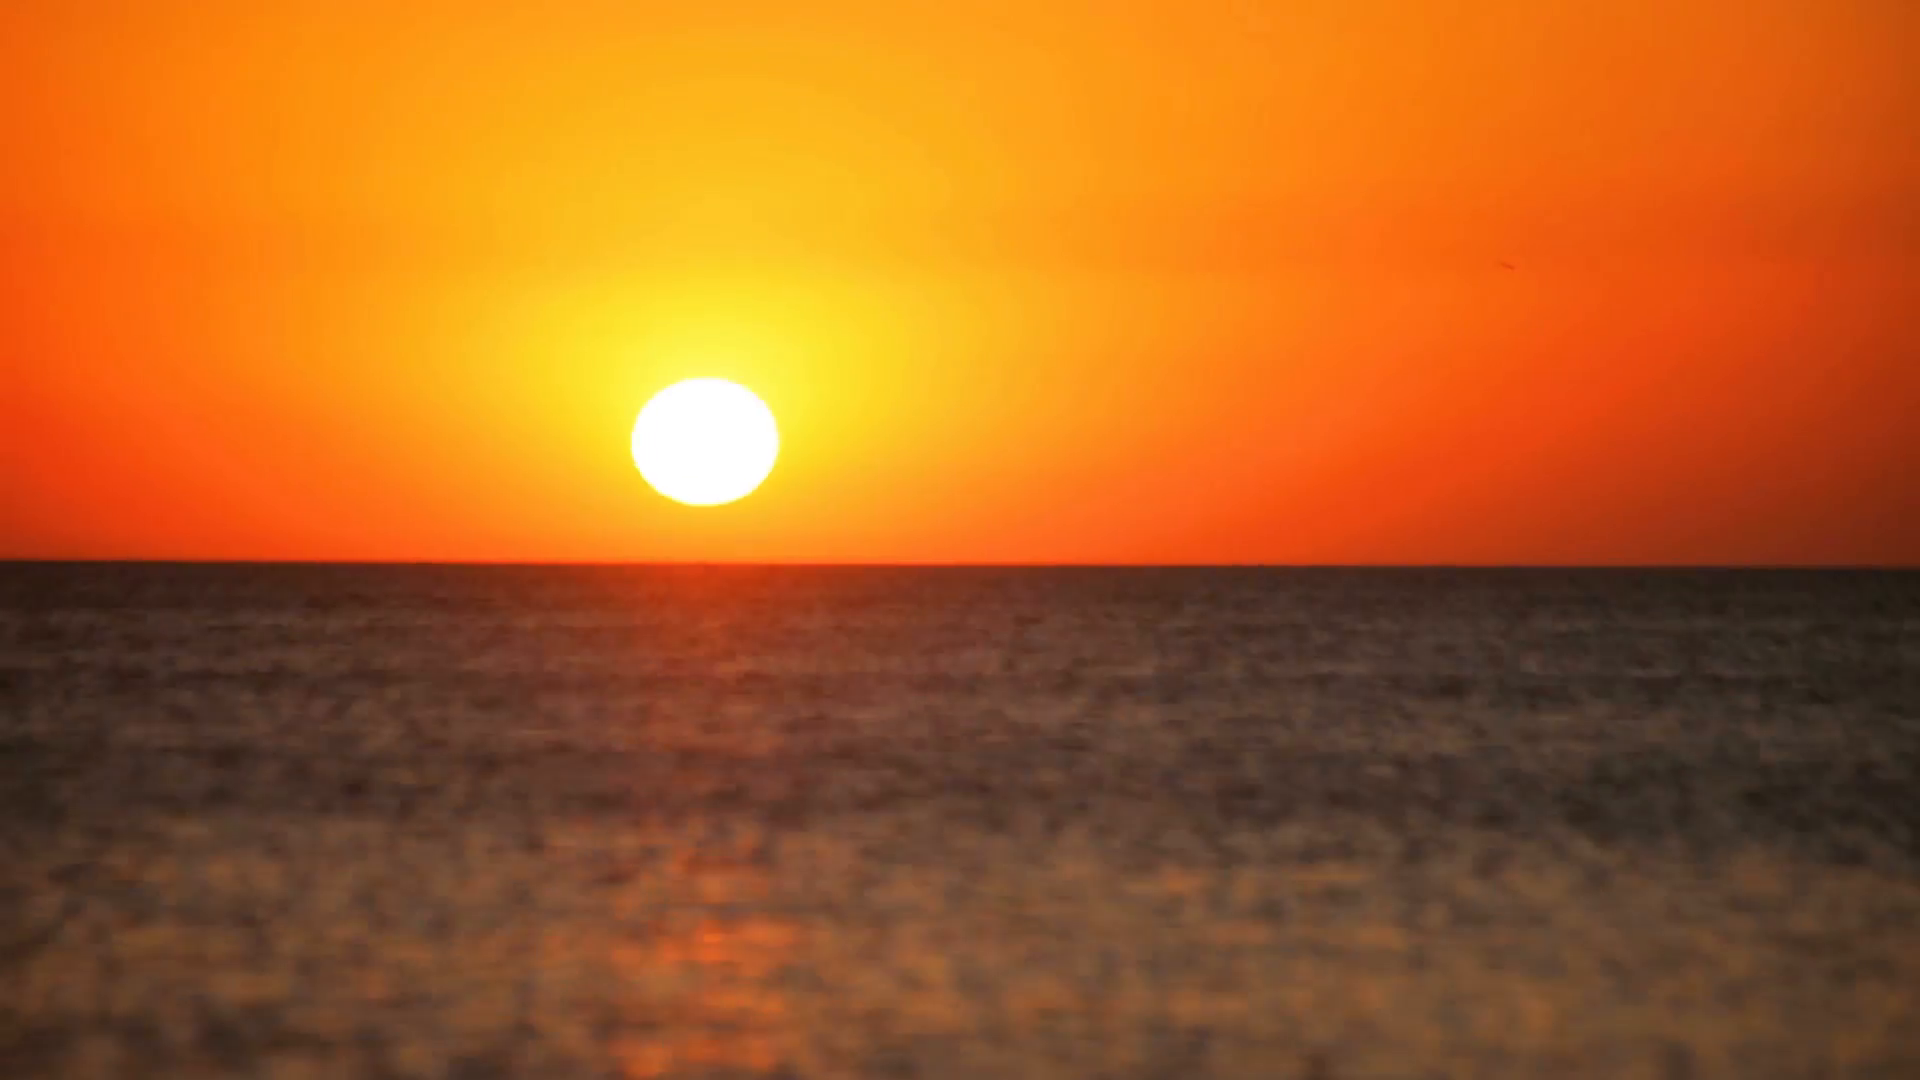 time lapse of sea sunset sun disappears below horizon of sea nlejetbog  F0003 - Cung sầu - thơ Trường Nguyễn